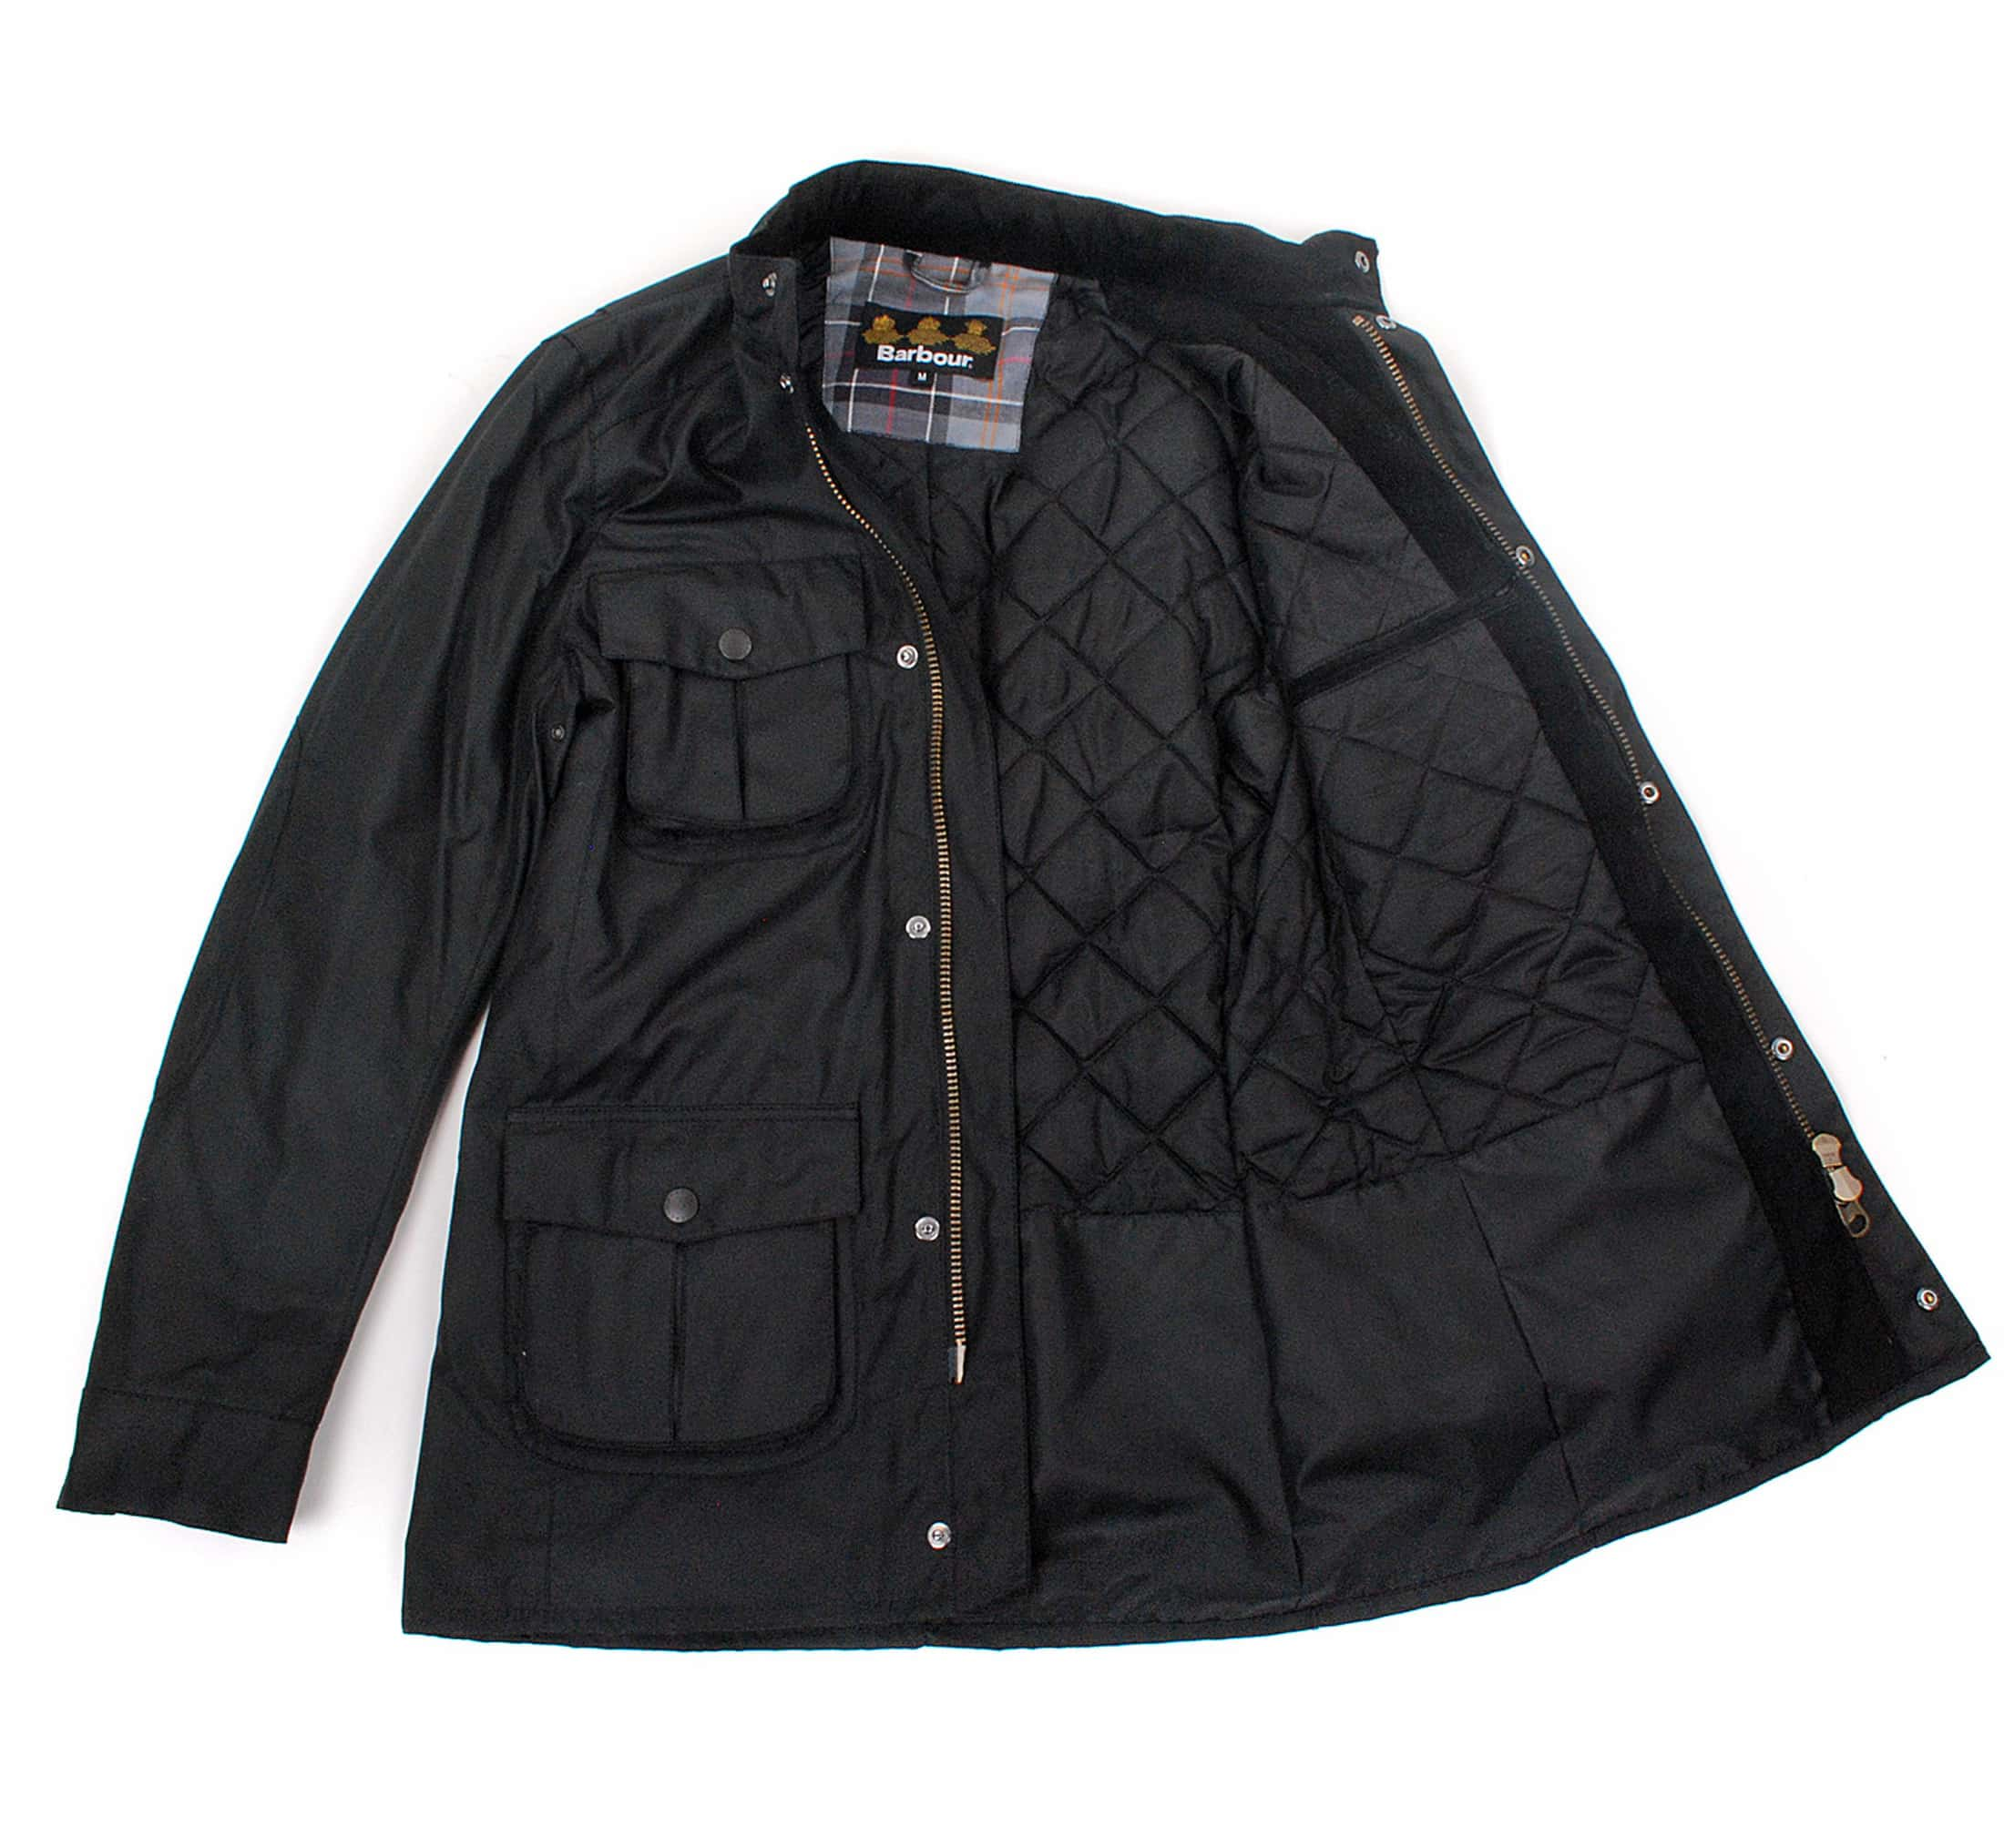 Barbour Waxjas Corbridge Zwart foto 6